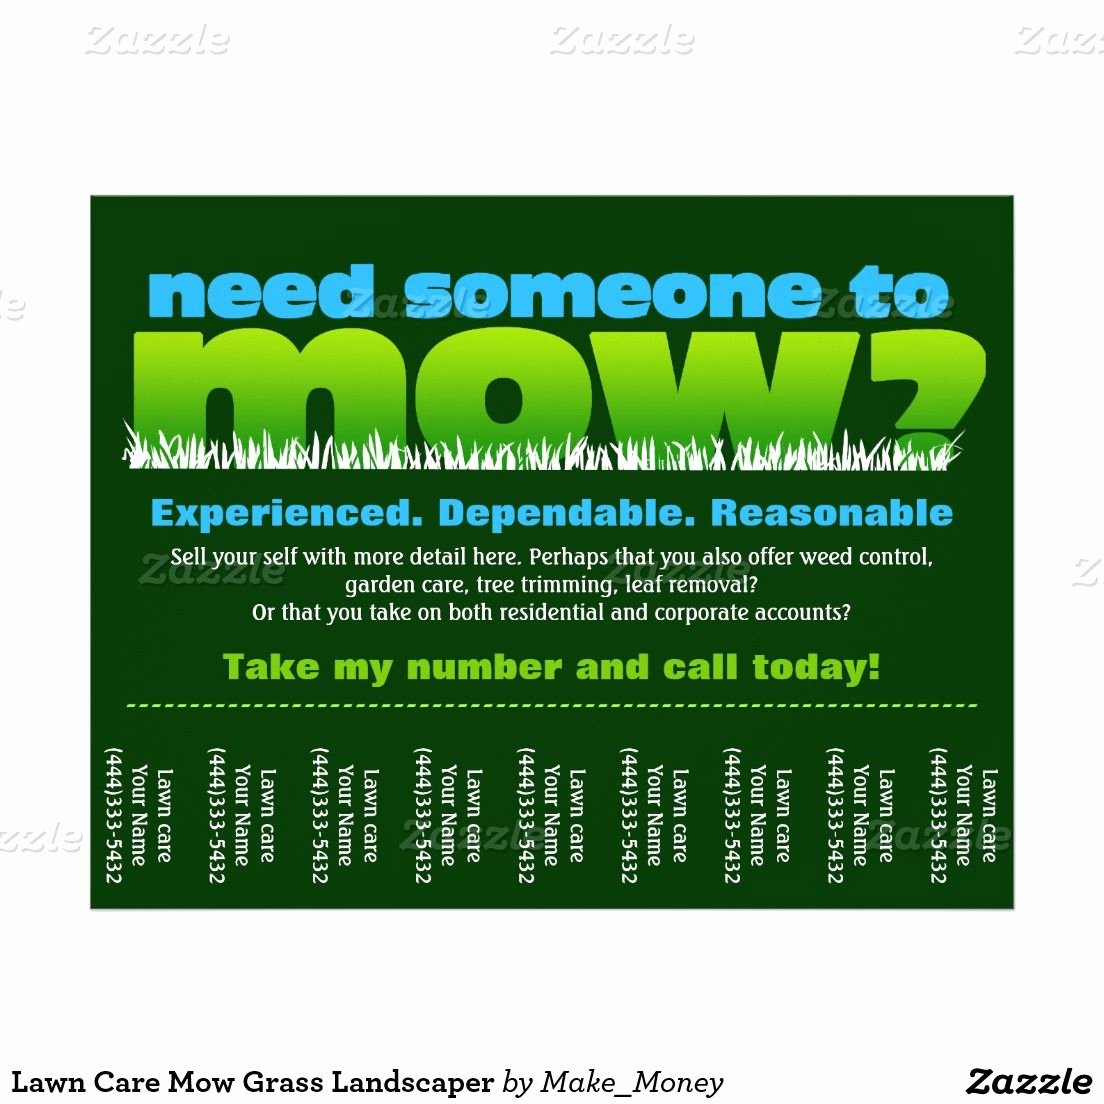 Lawn Mower Flyers Templates Awesome Lawn Care Mow Grass Landscaper Flyer Zazzle